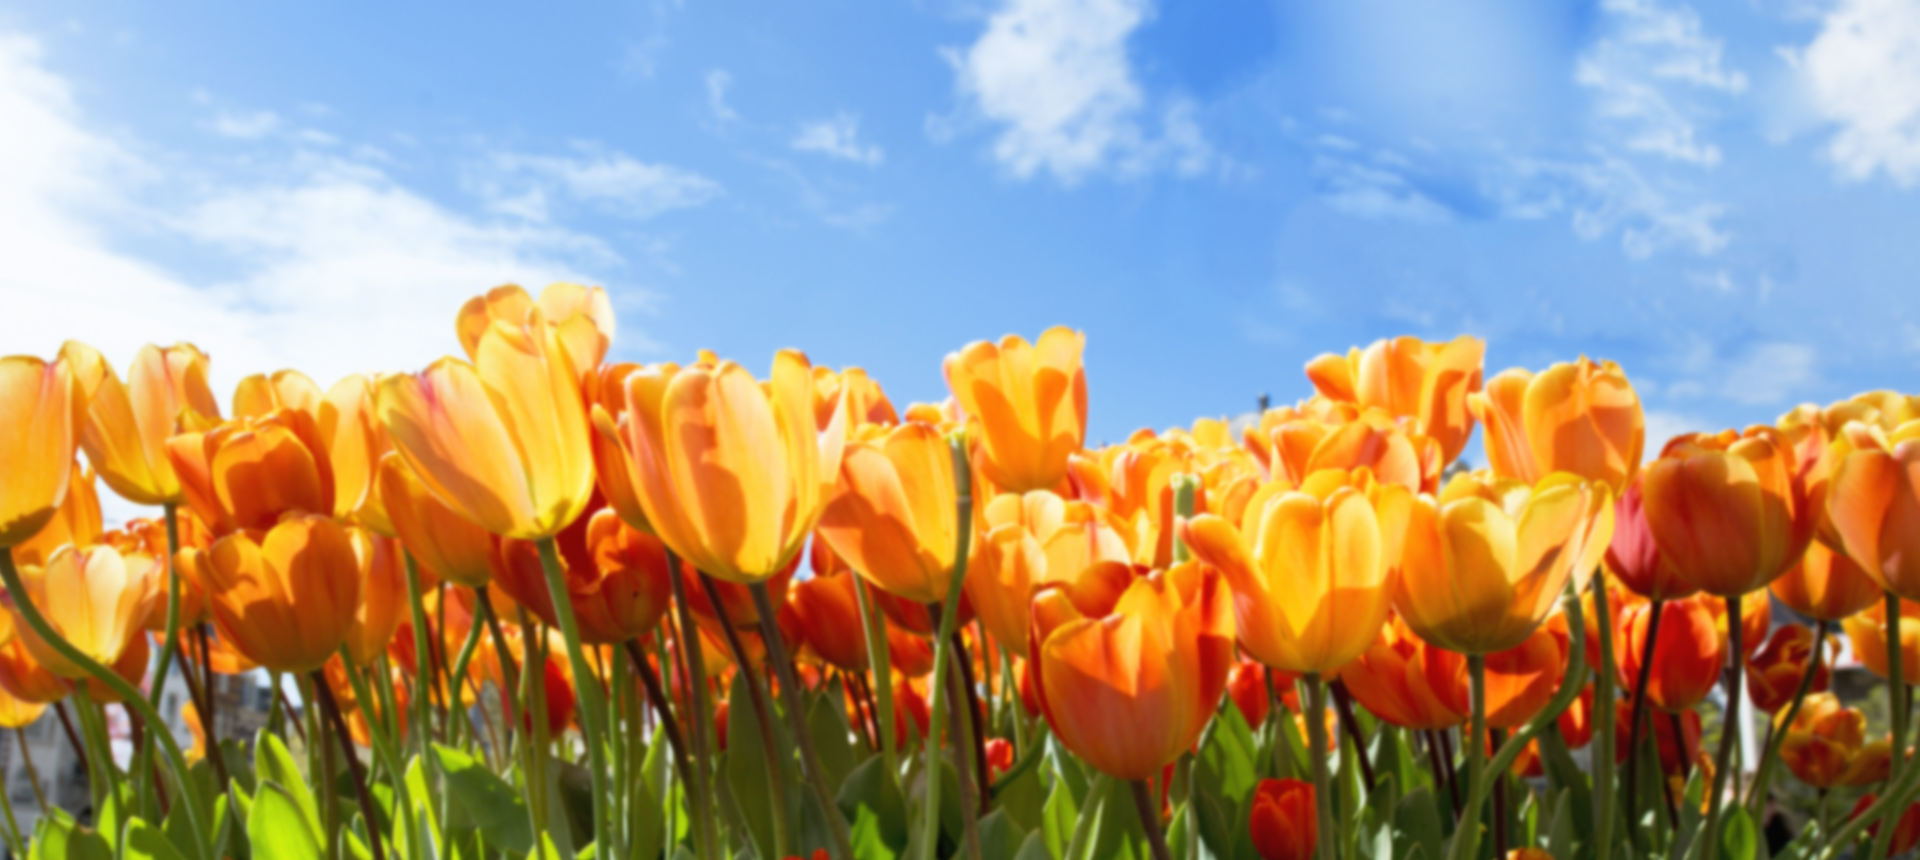 background-tulips-schouten-n.schouten